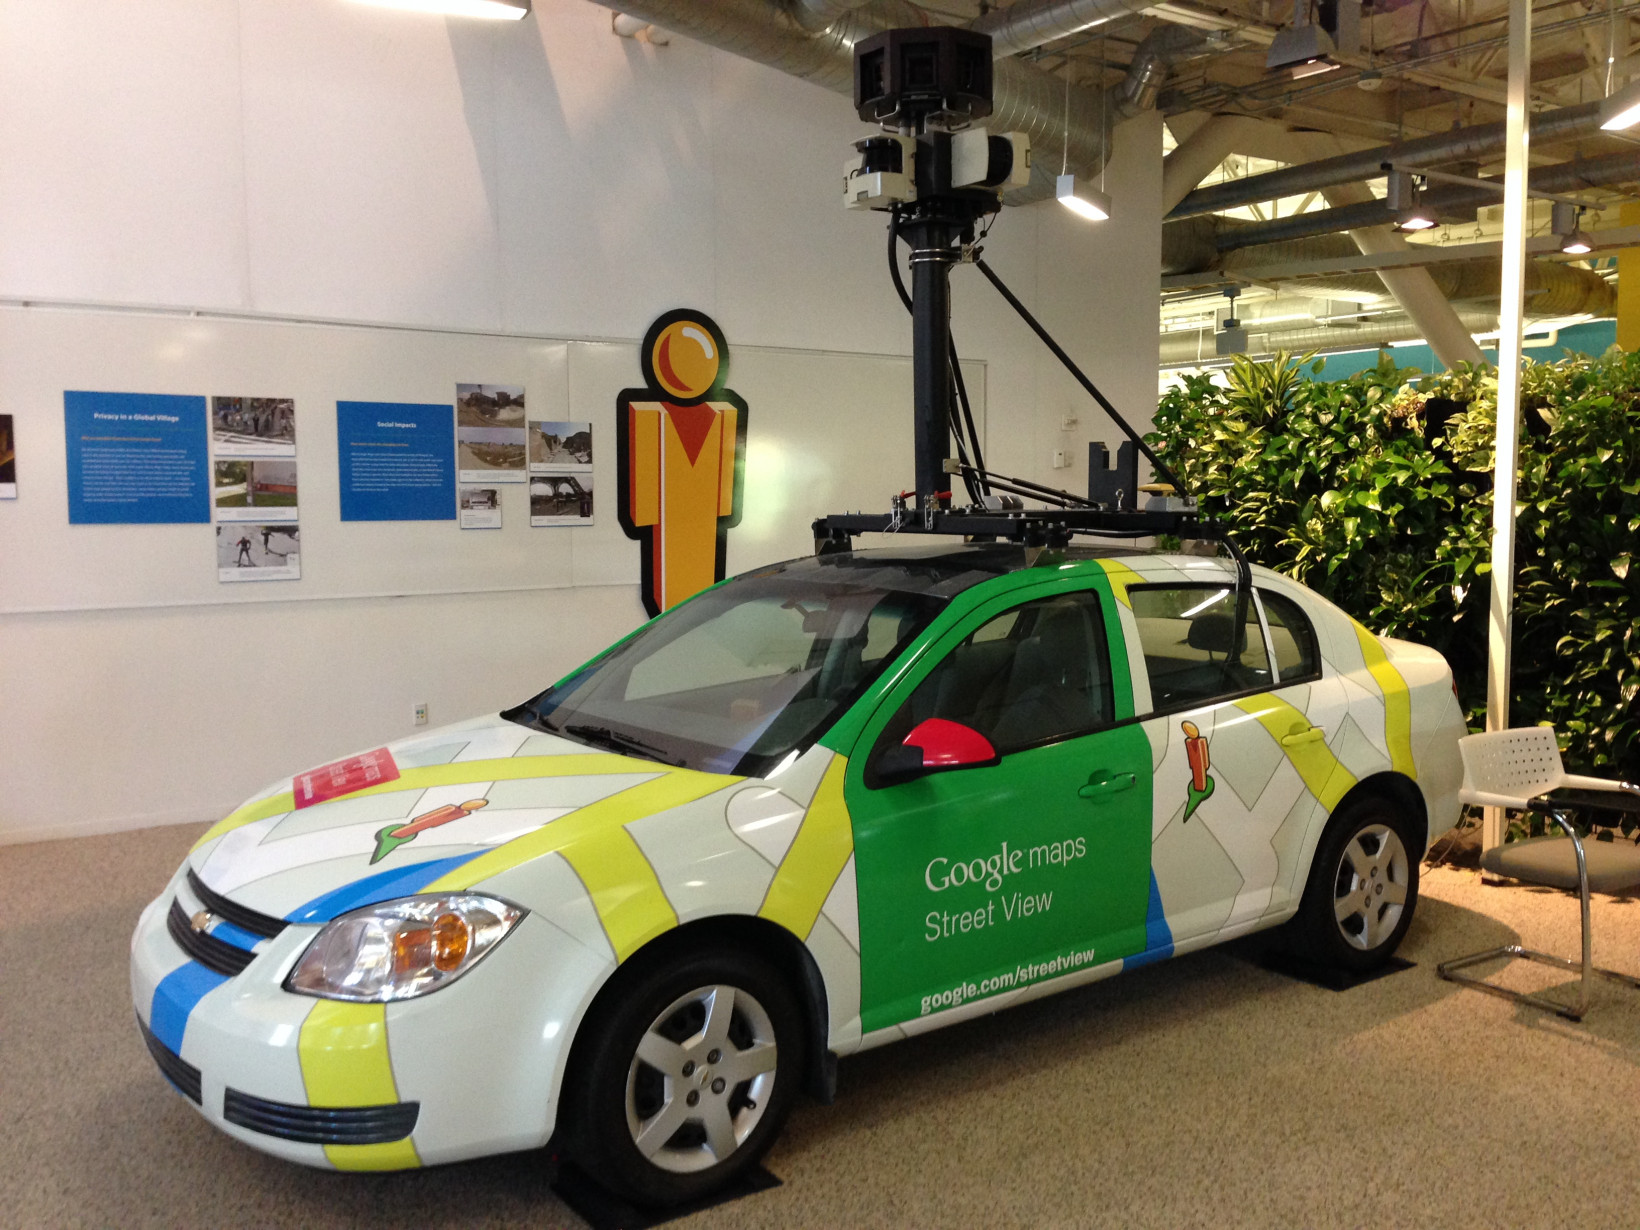 google, street view, car, 360 cameras, car